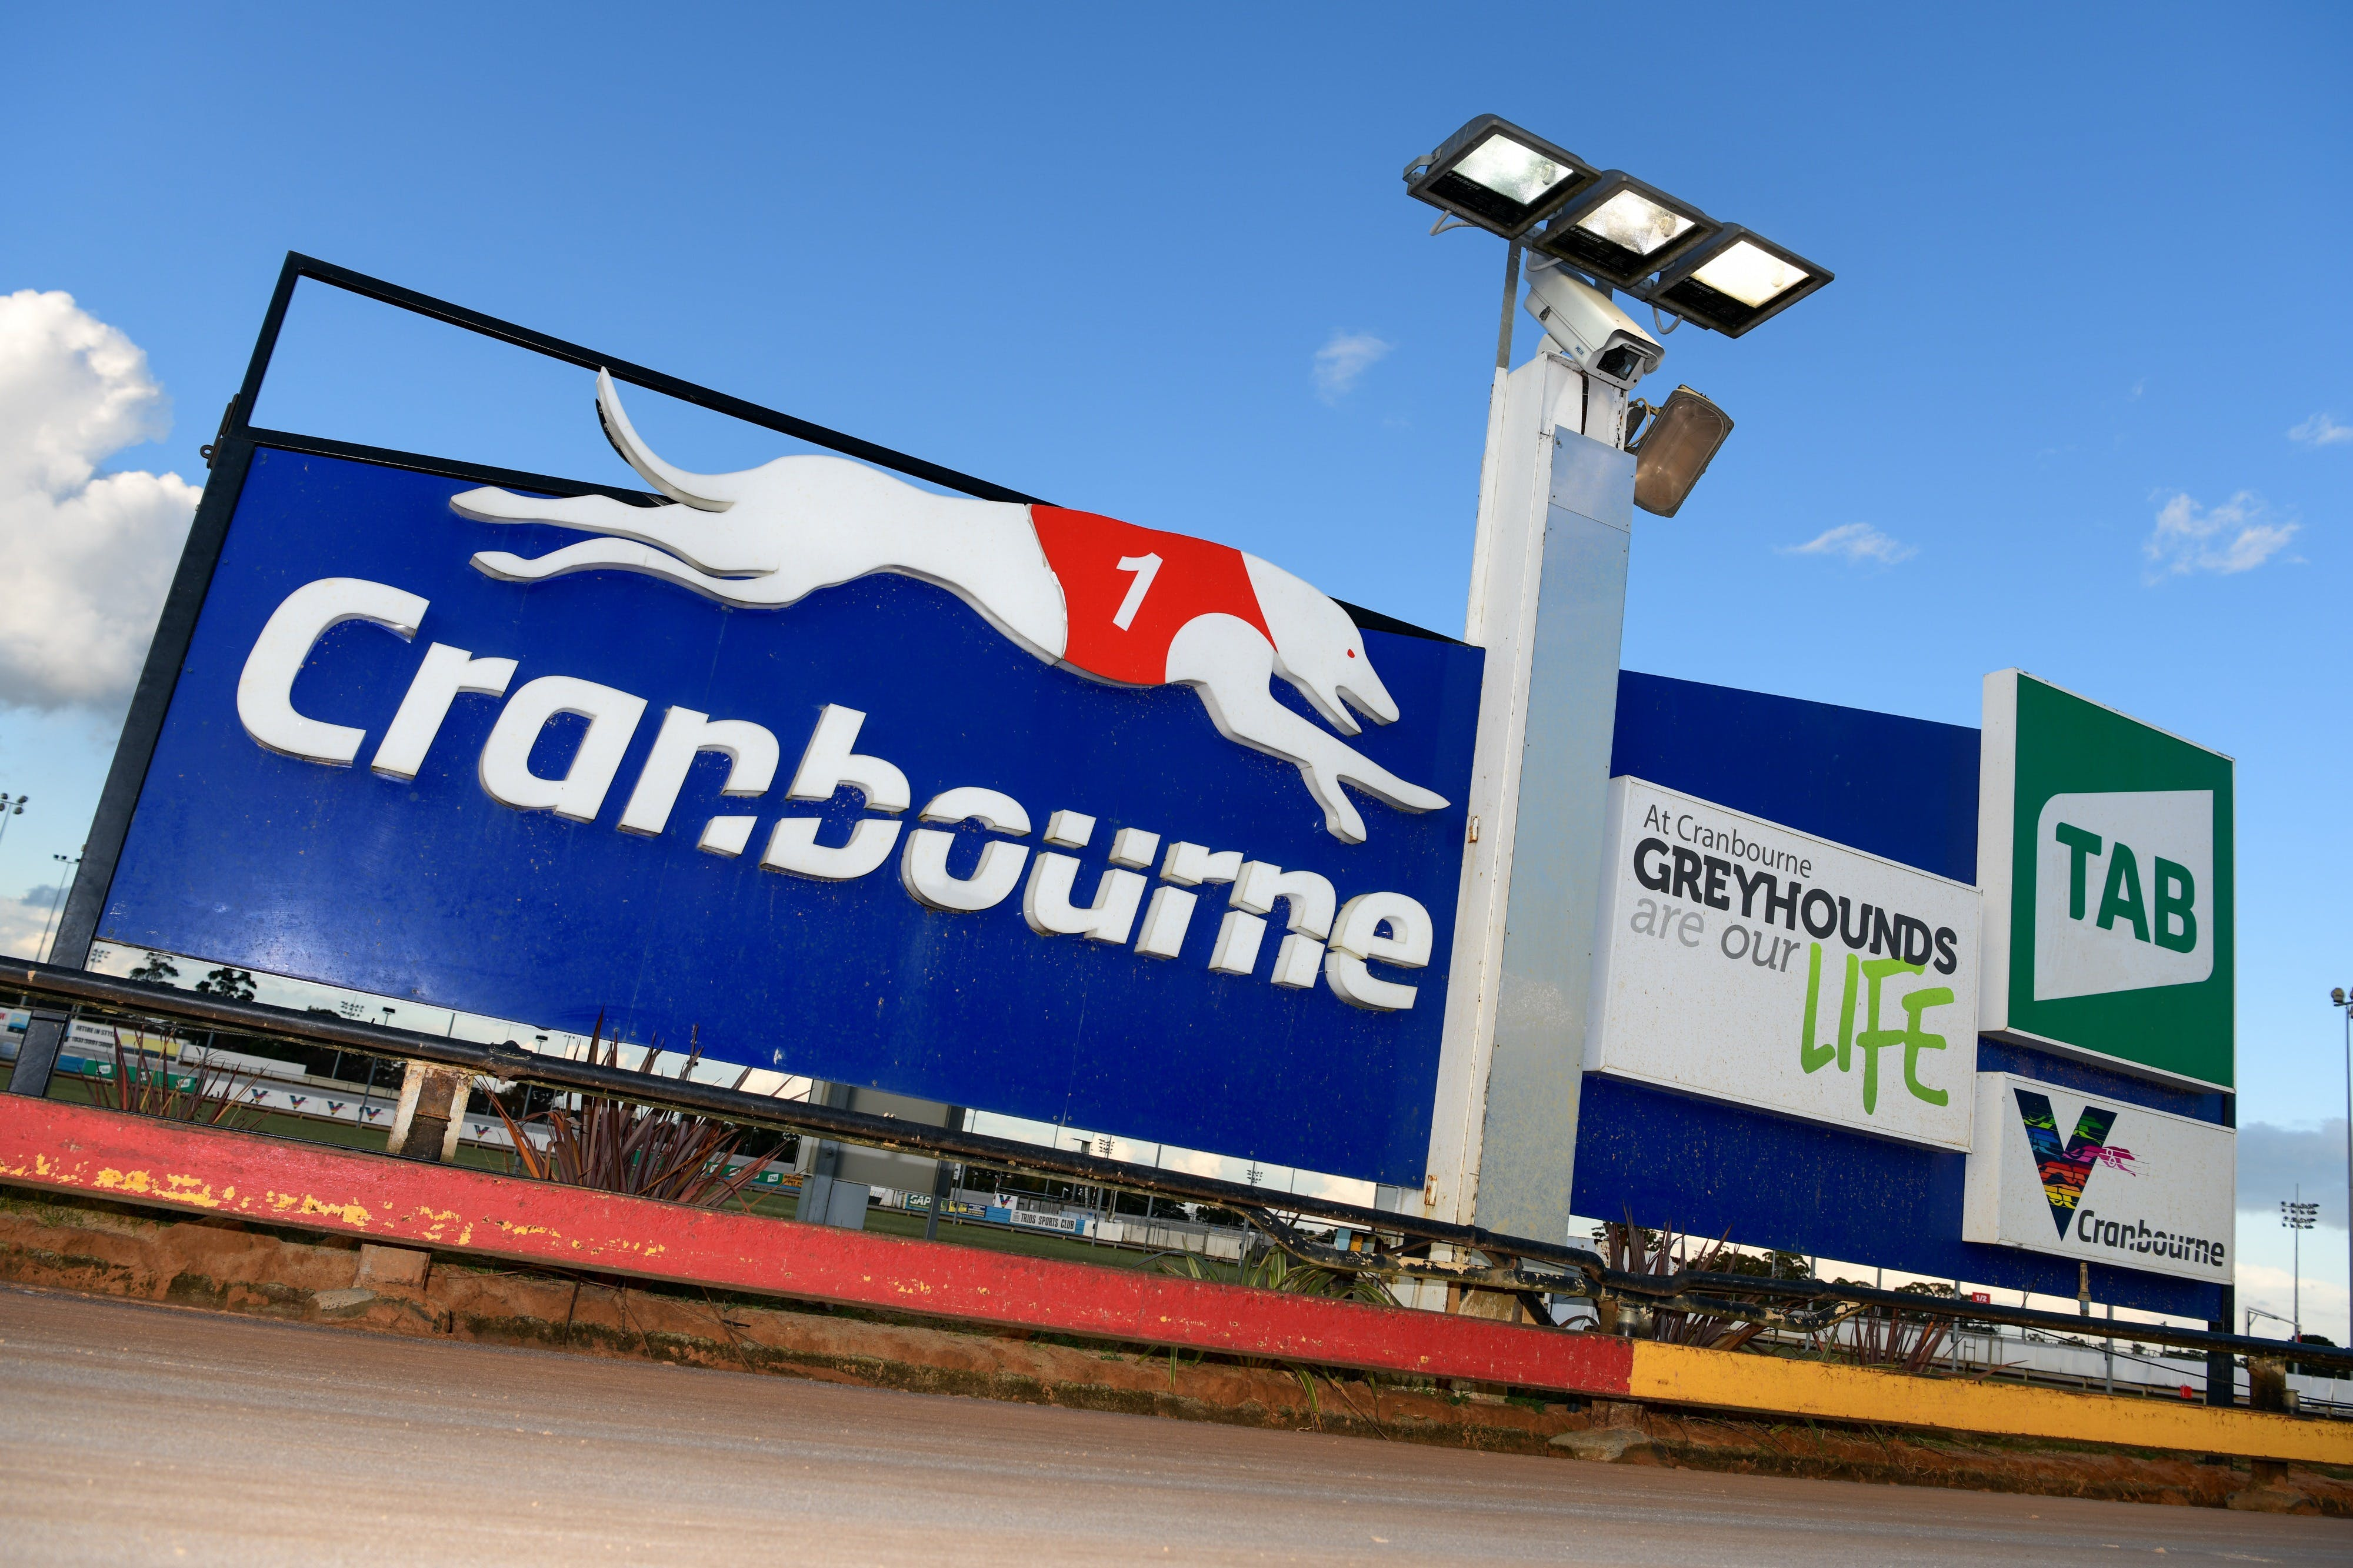 Cranbourne Greyhound Racing Club - Accommodation Port Macquarie